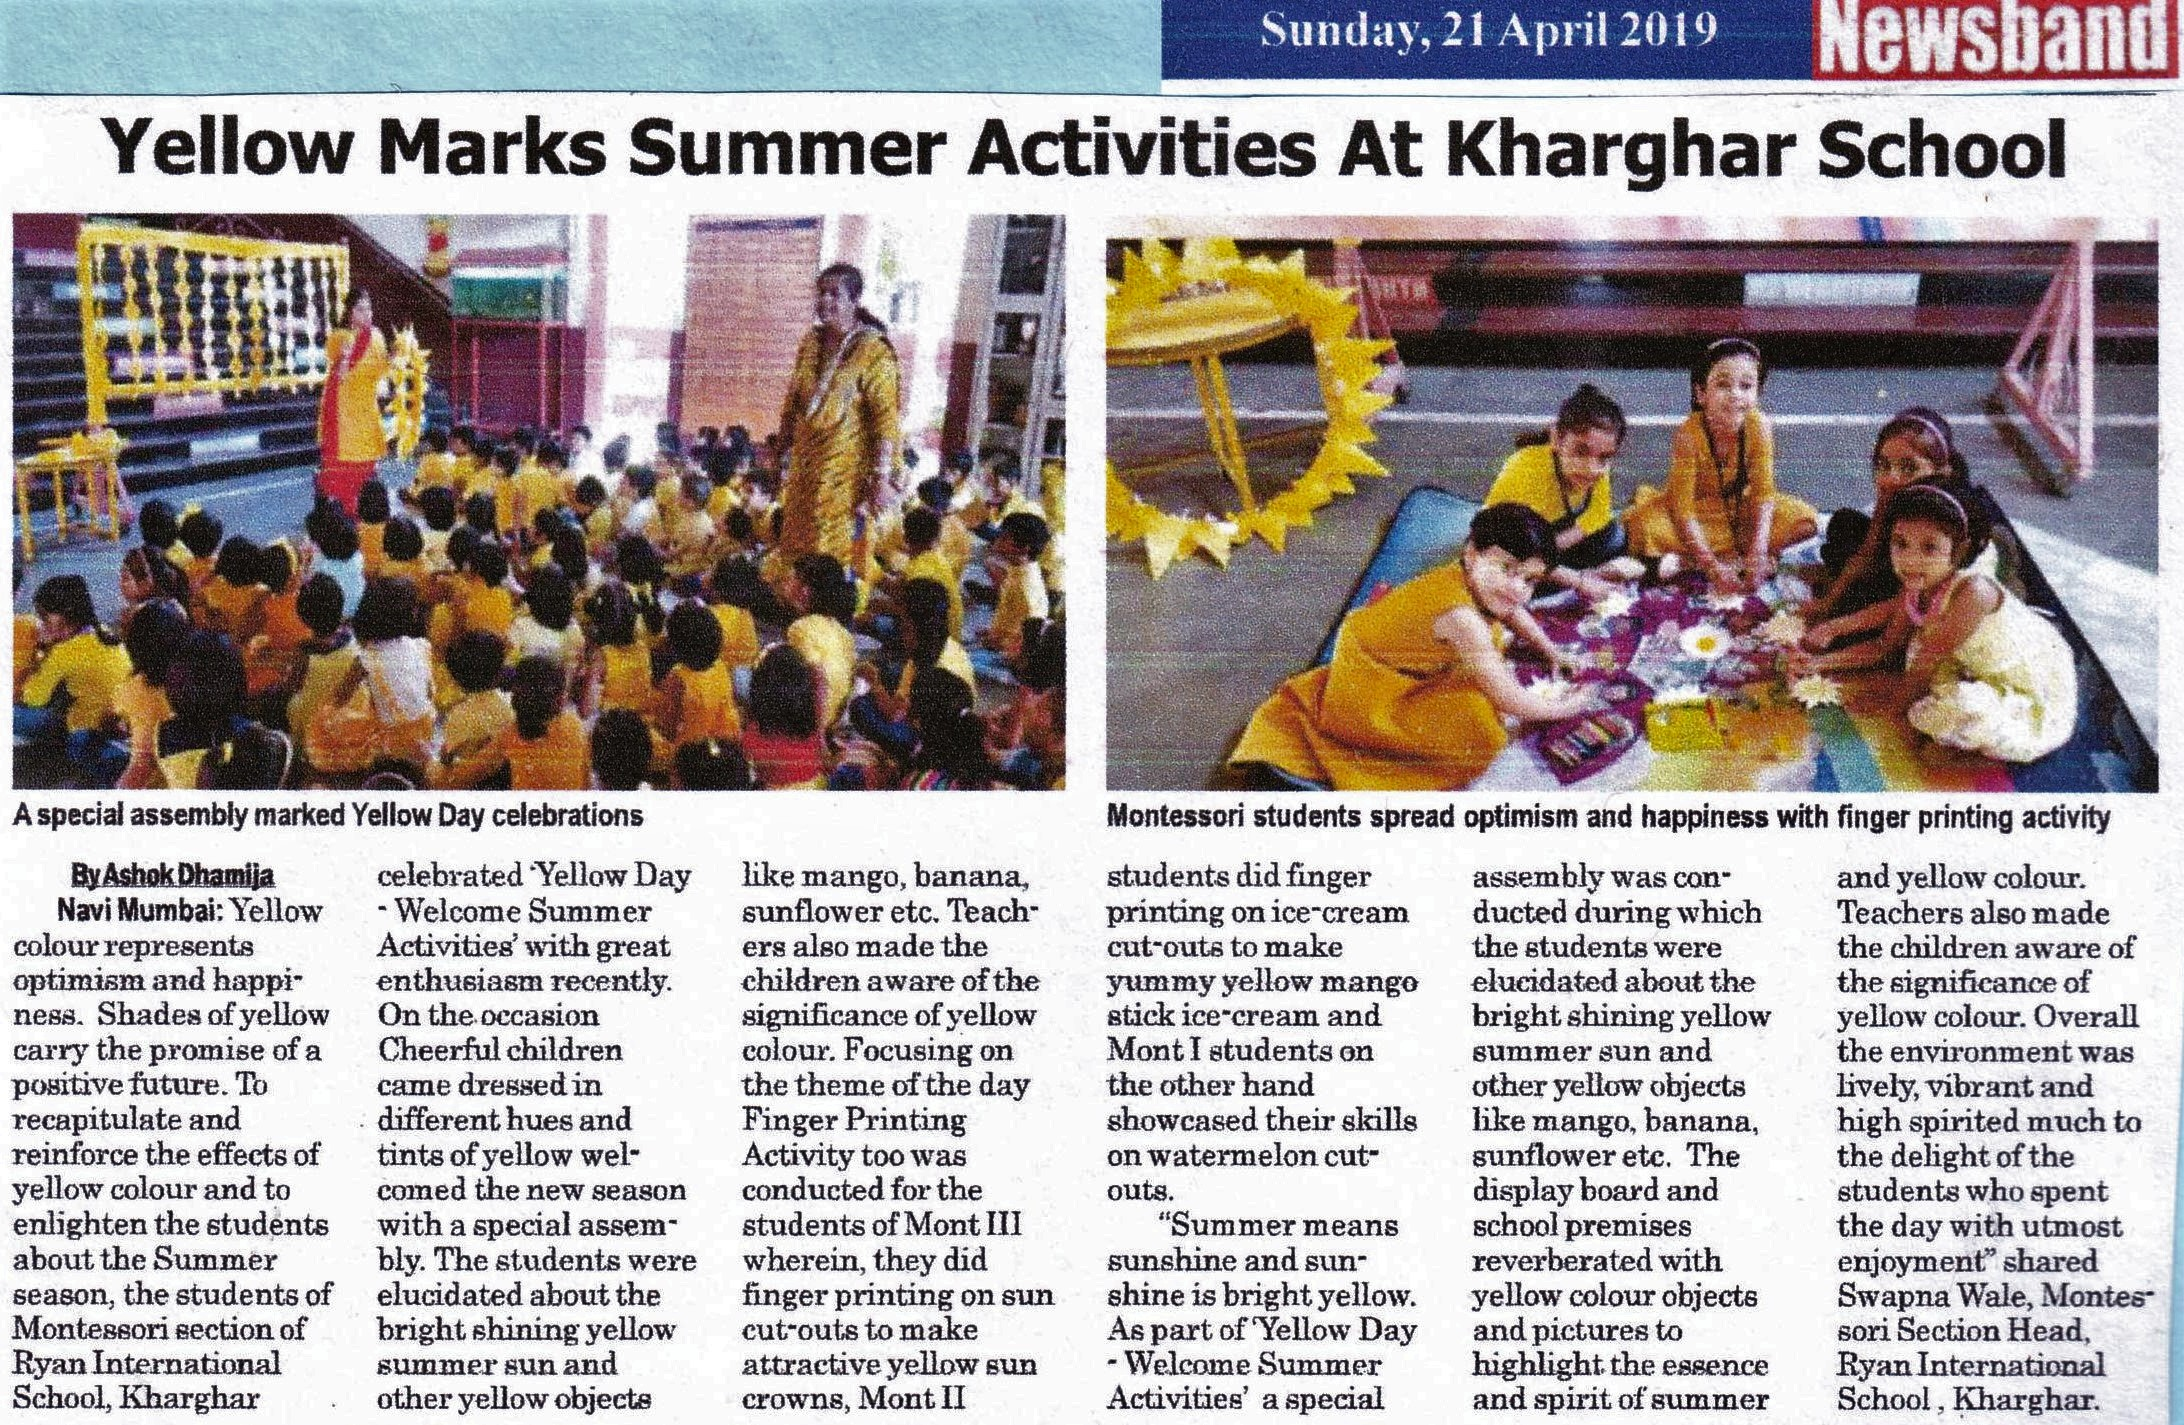 Yellow marks summer activities at Kharghar school was mentioned in Newsband - Ryan International School, Kharghar - Ryan Group